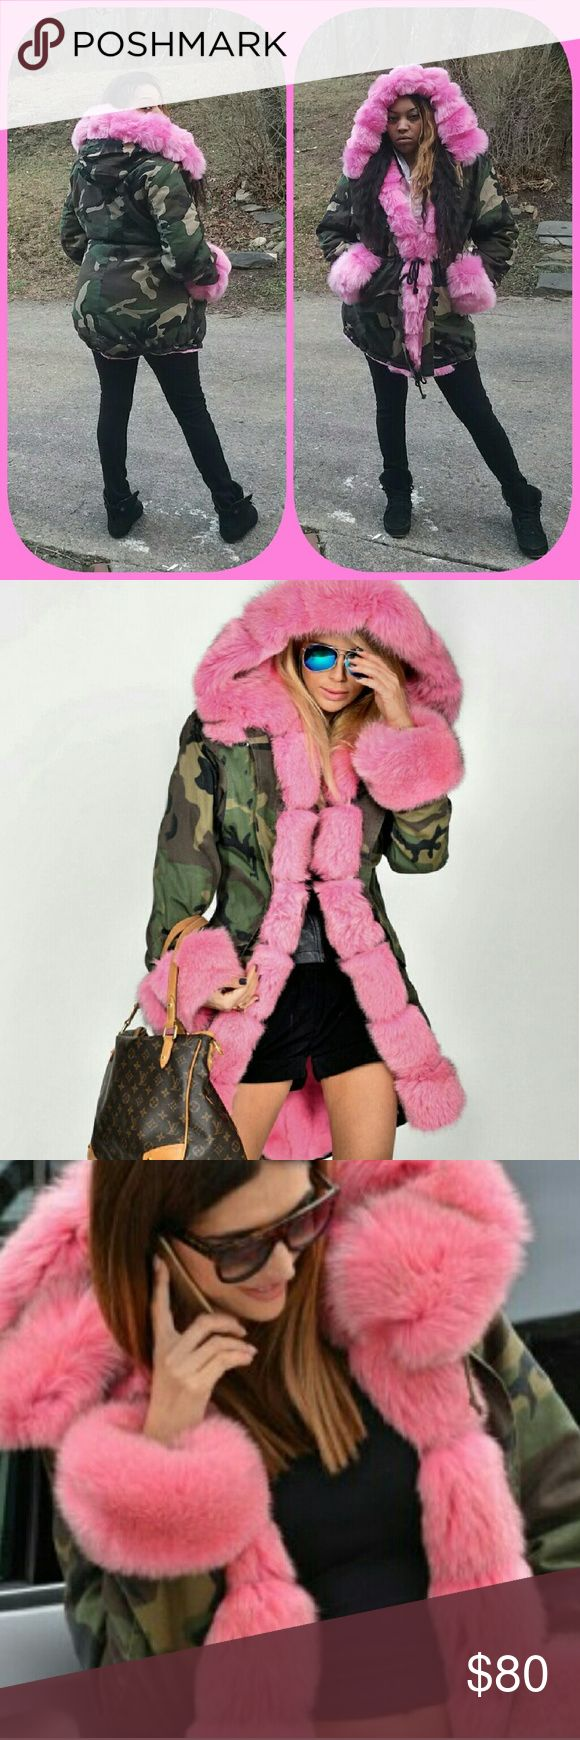 Camouflage Coat with Pink Faux Fur XXXL (3XL/16) I just bought this coat & the wrong size was sent to me! This is brand new with tags! Has draw-strings at the waist & bottom for that feminine look! Full fur on the interior! It's super warm, soft, & cozy!   *Rose Pink Quilted Padded, with Faux Fur Hood. Warm Thick Women's Camouflage Jacket/Parka Overcoat*     Jackets & Coats